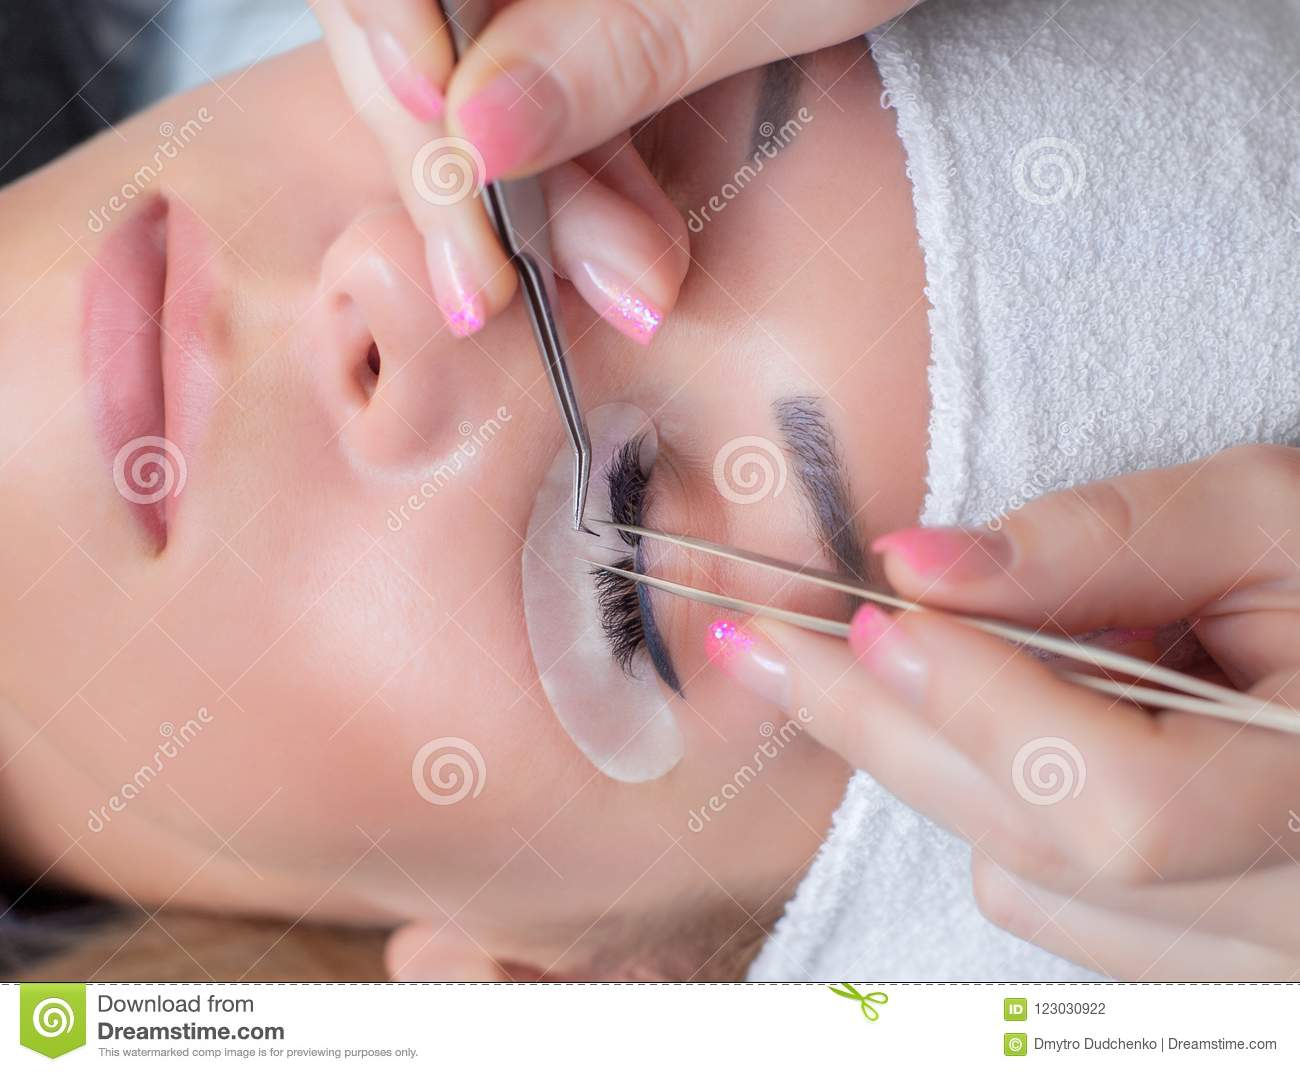 Eyelash extension procedure close up. Beautiful Woman with long lashes